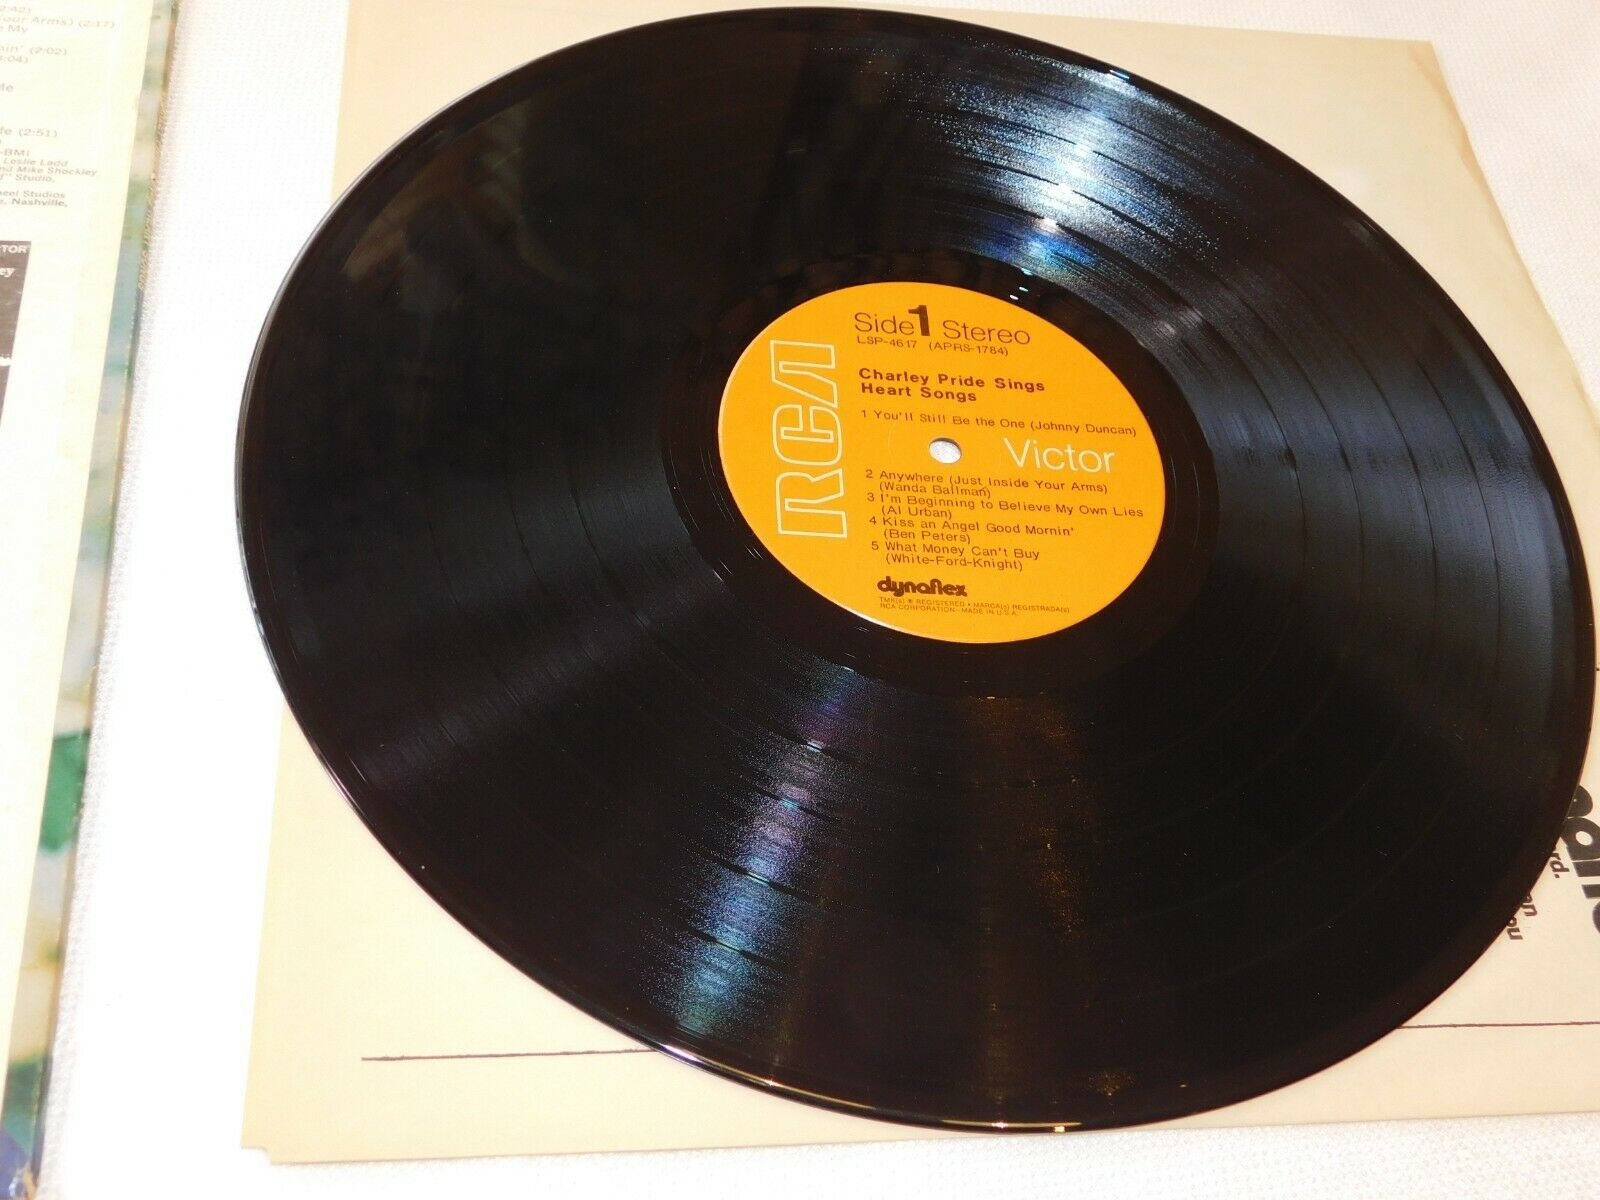 Charley Pride Sings Heart Songs Record LP RCA Victor LSP-4617 Stereo Once Again